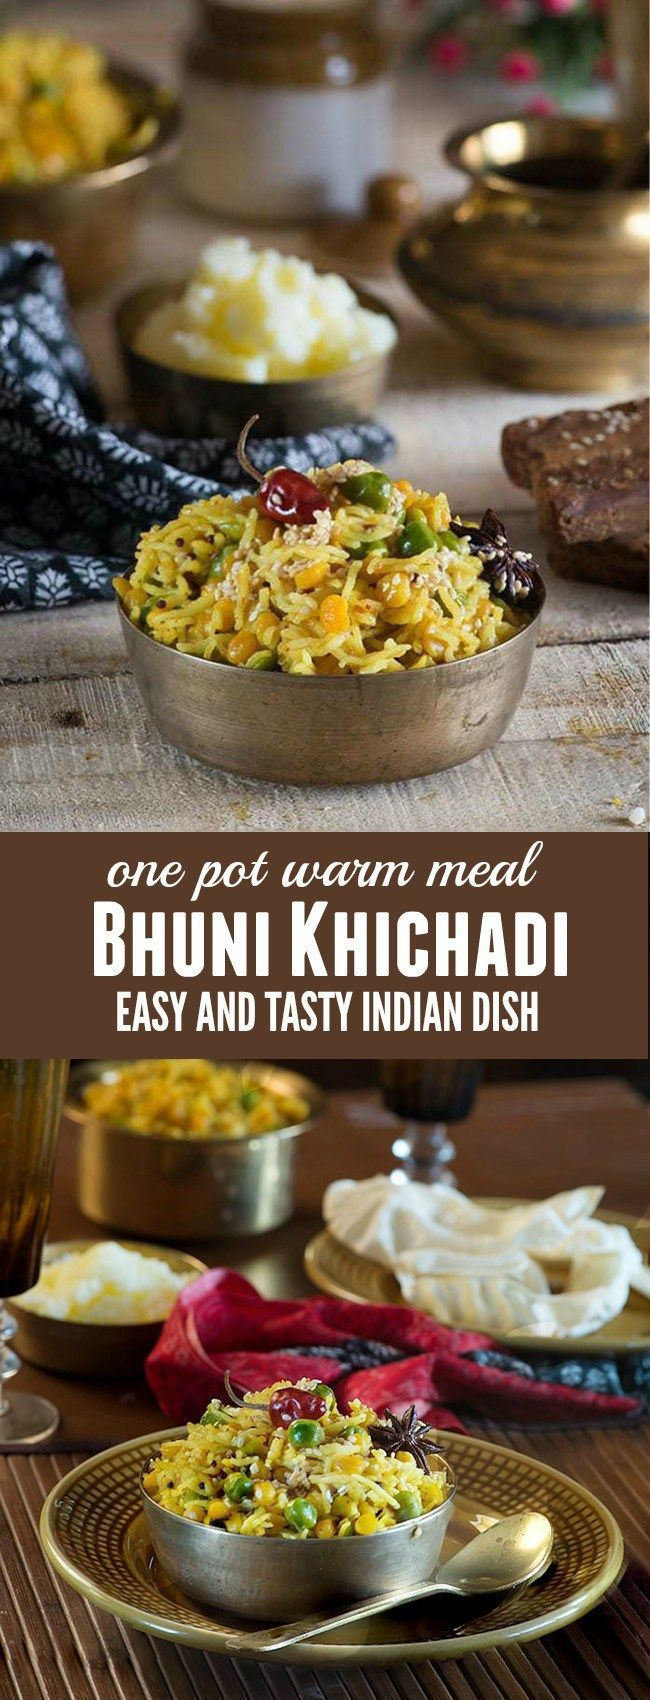 Bhuni Khichadi is a dish that is cooked on Makar Sankranti in most of northern India. From as long as I remember, bhuni khichadi and Chawal ki kheer are two staple dishes Mom used to make for the breakfast on the day of makar Sankranti which falls on next